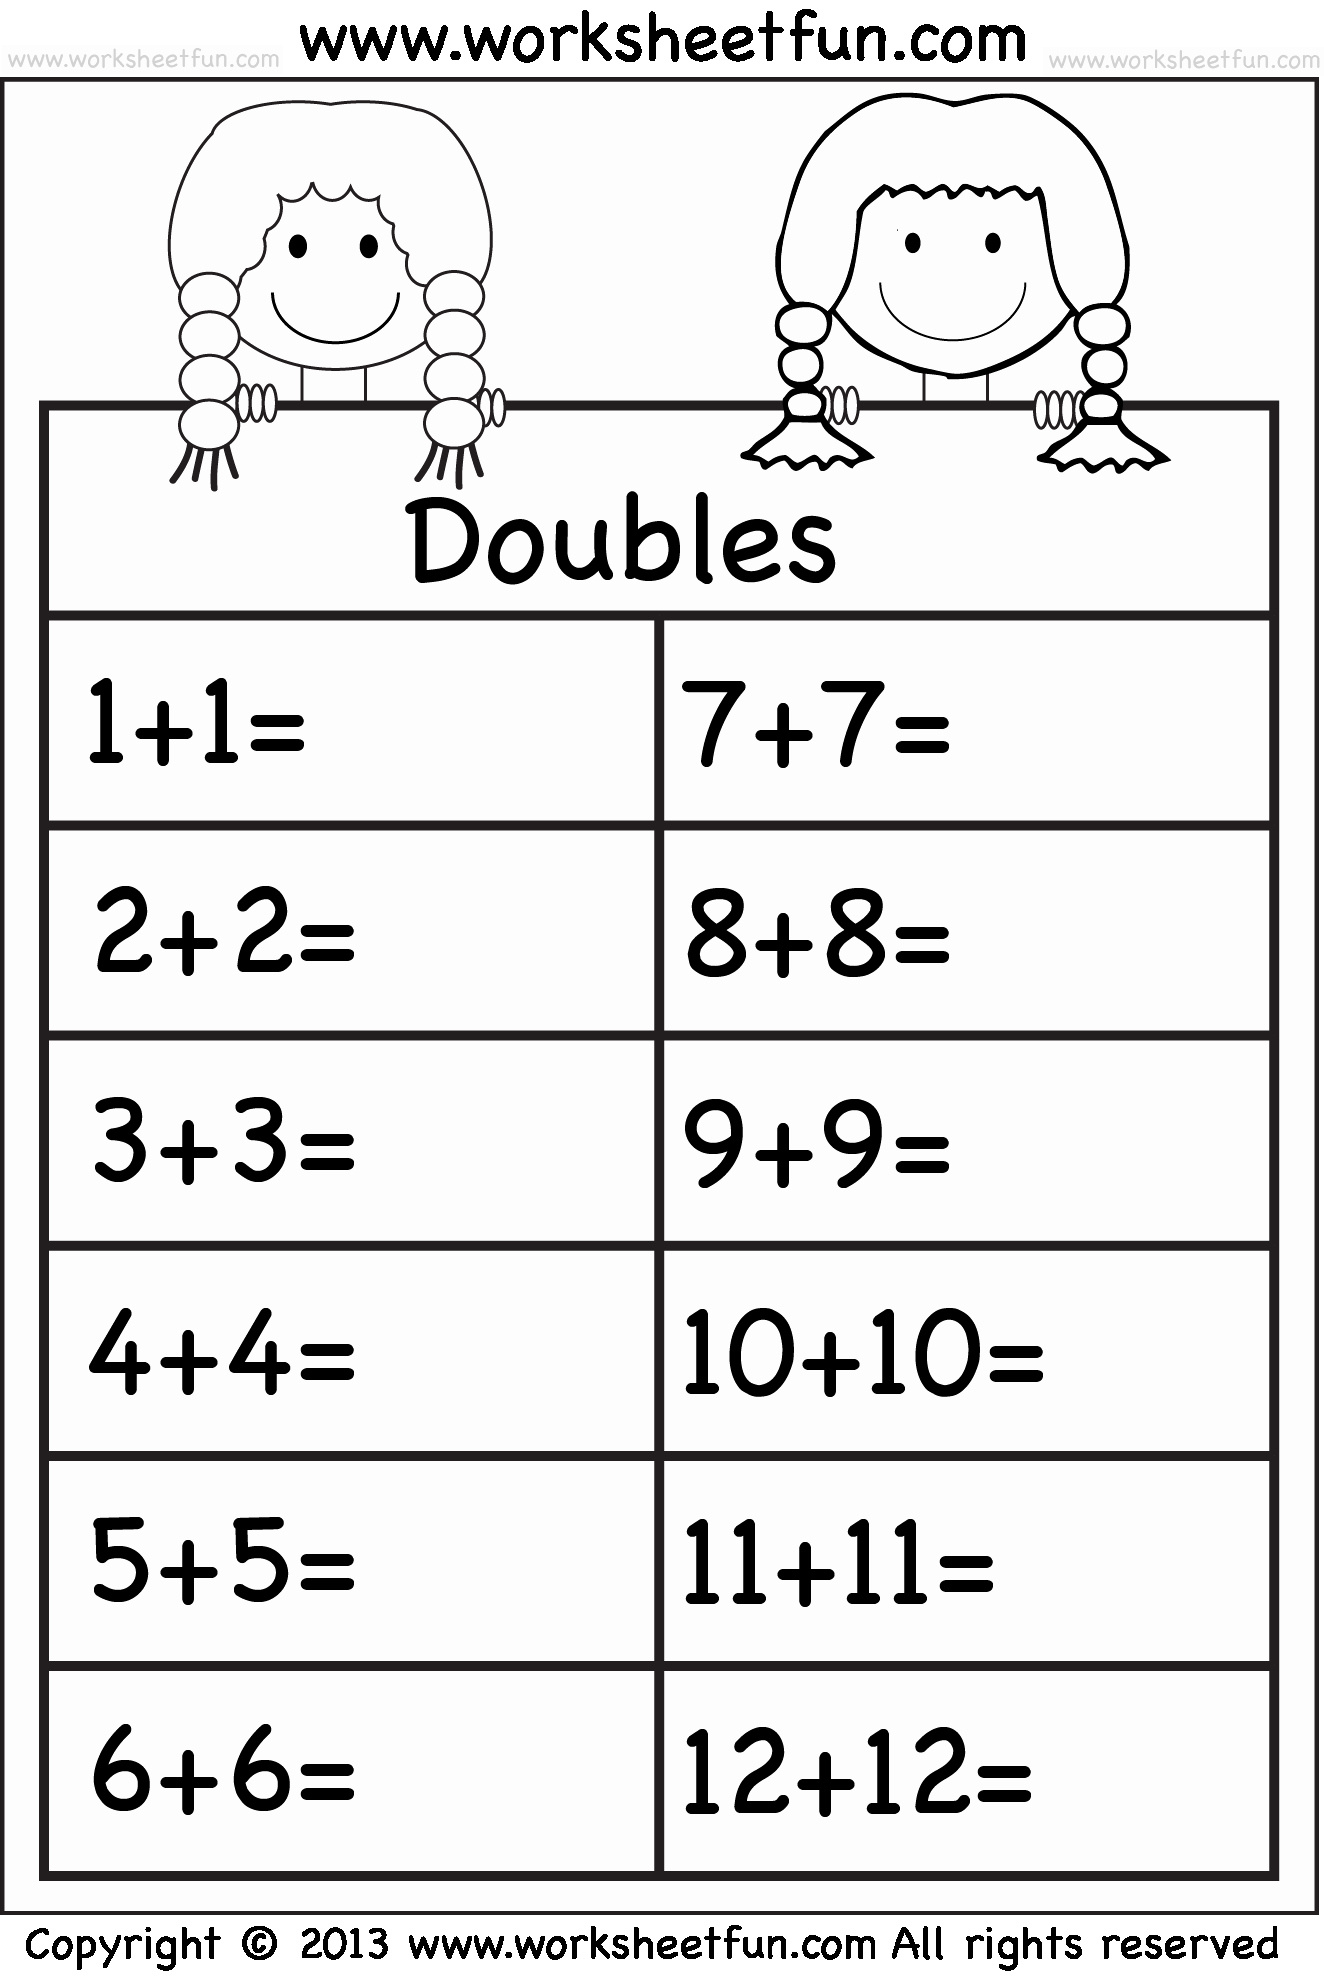 Doubles Math Facts Worksheet Luxury Addition Doubles – 1 Worksheet Free Printable Worksheets